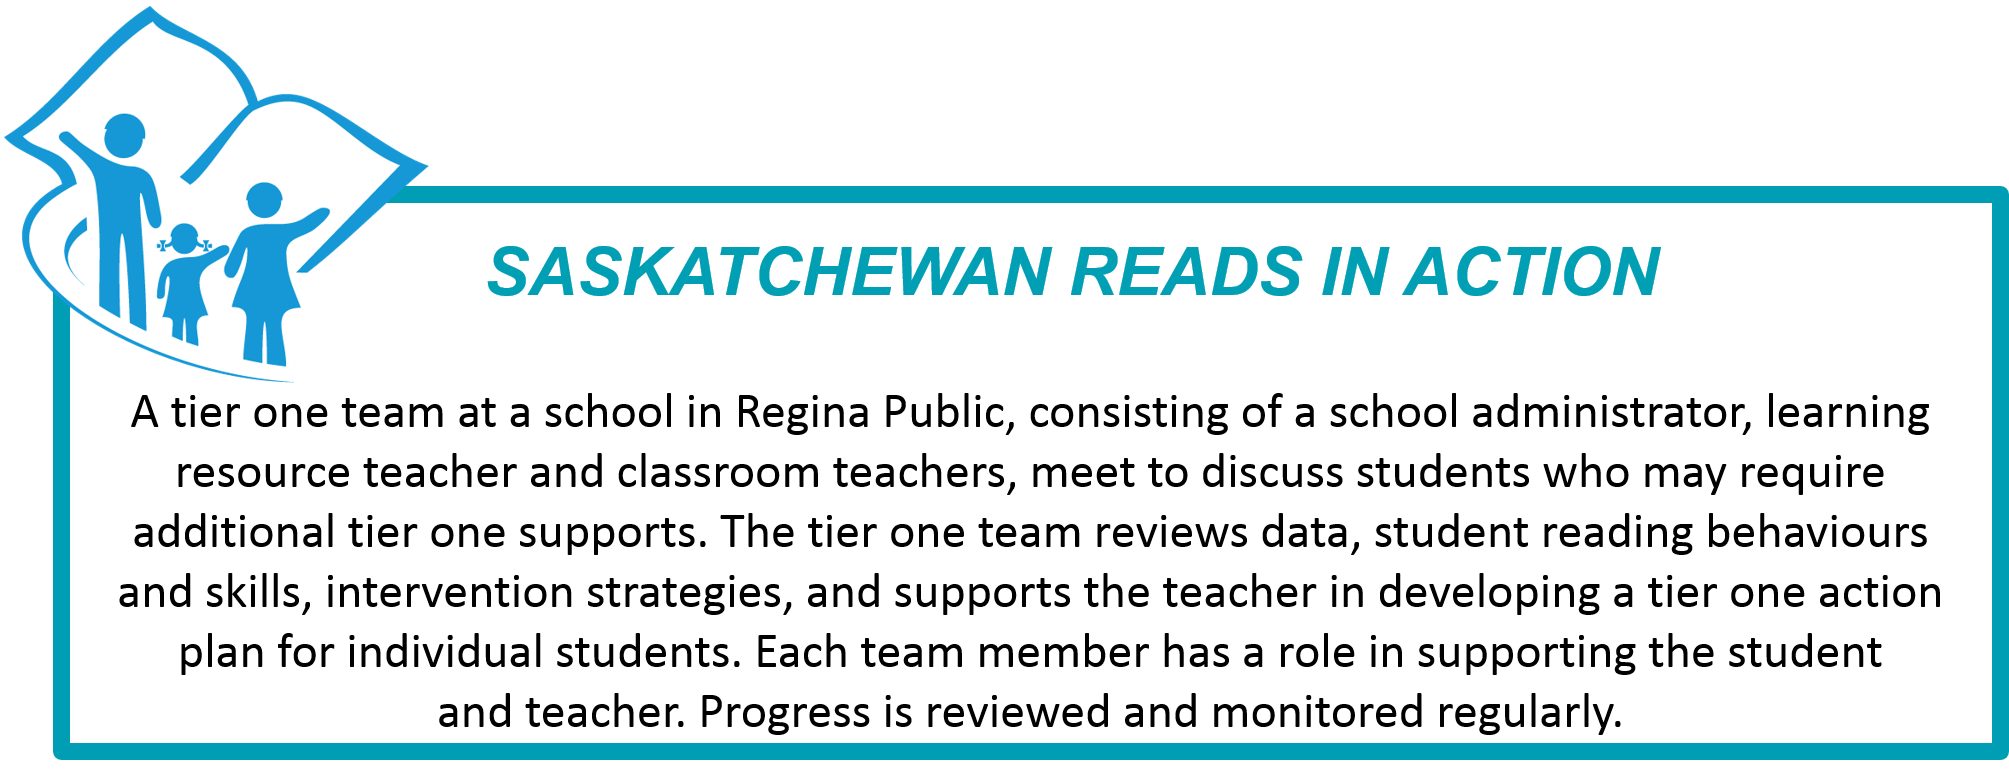 sask_reads_action_knowing_using_reading_data